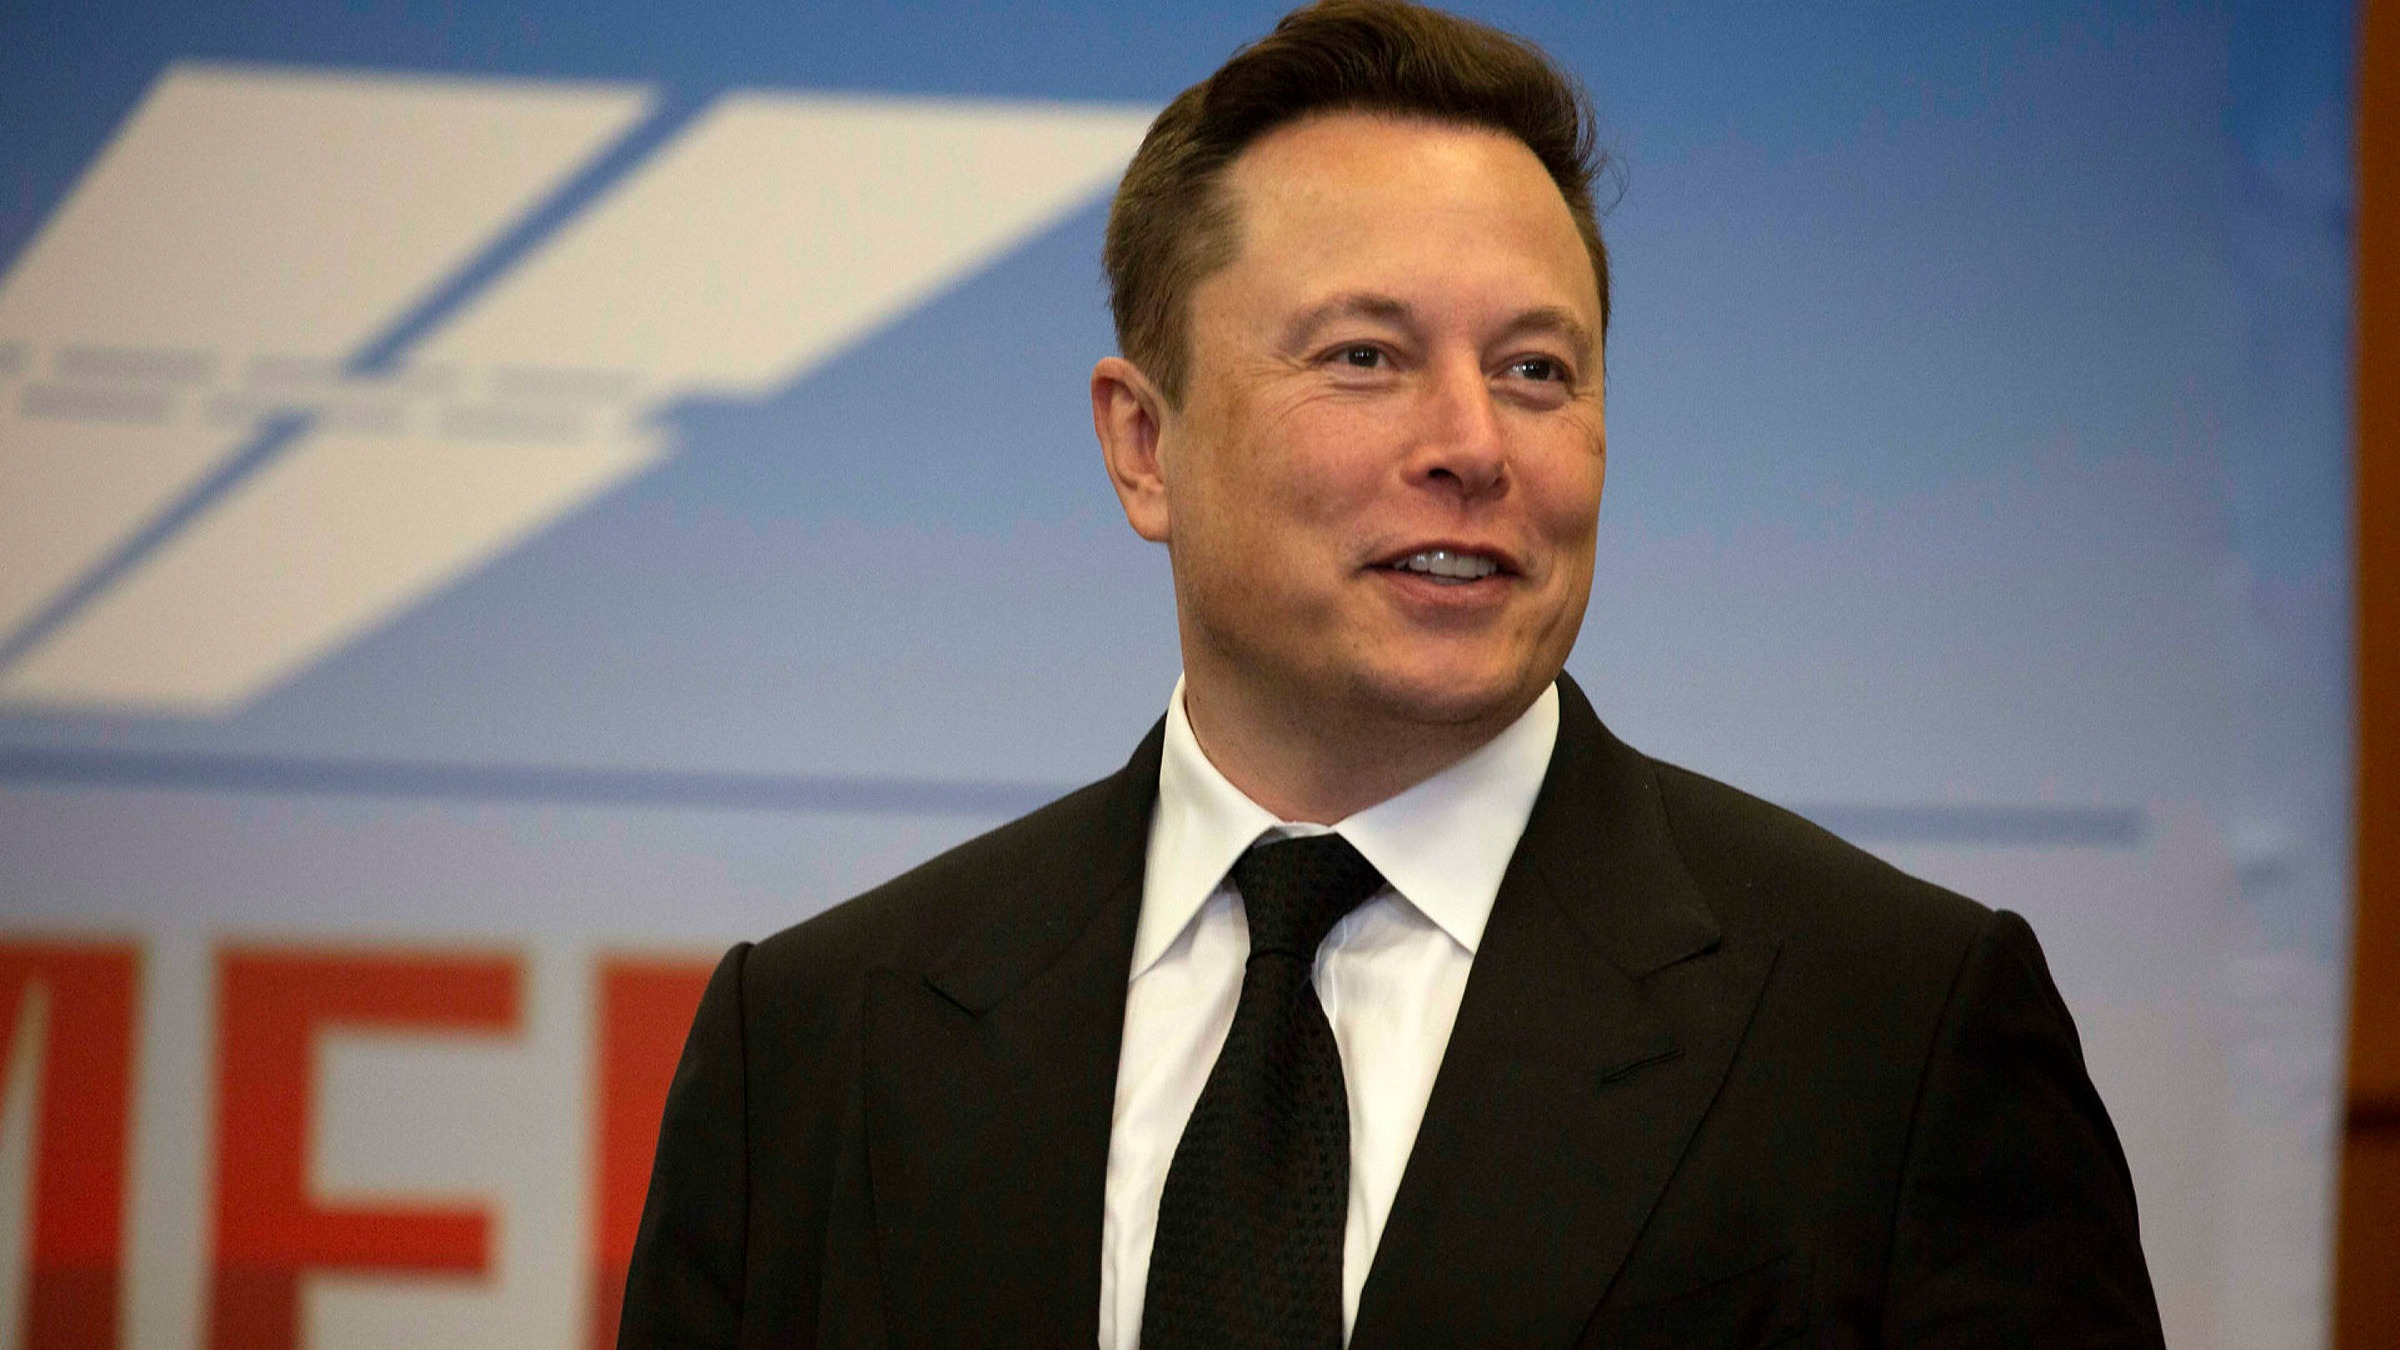 Musk says SpaceX holds bitcoin, Tesla 'likely' to resume accepting it